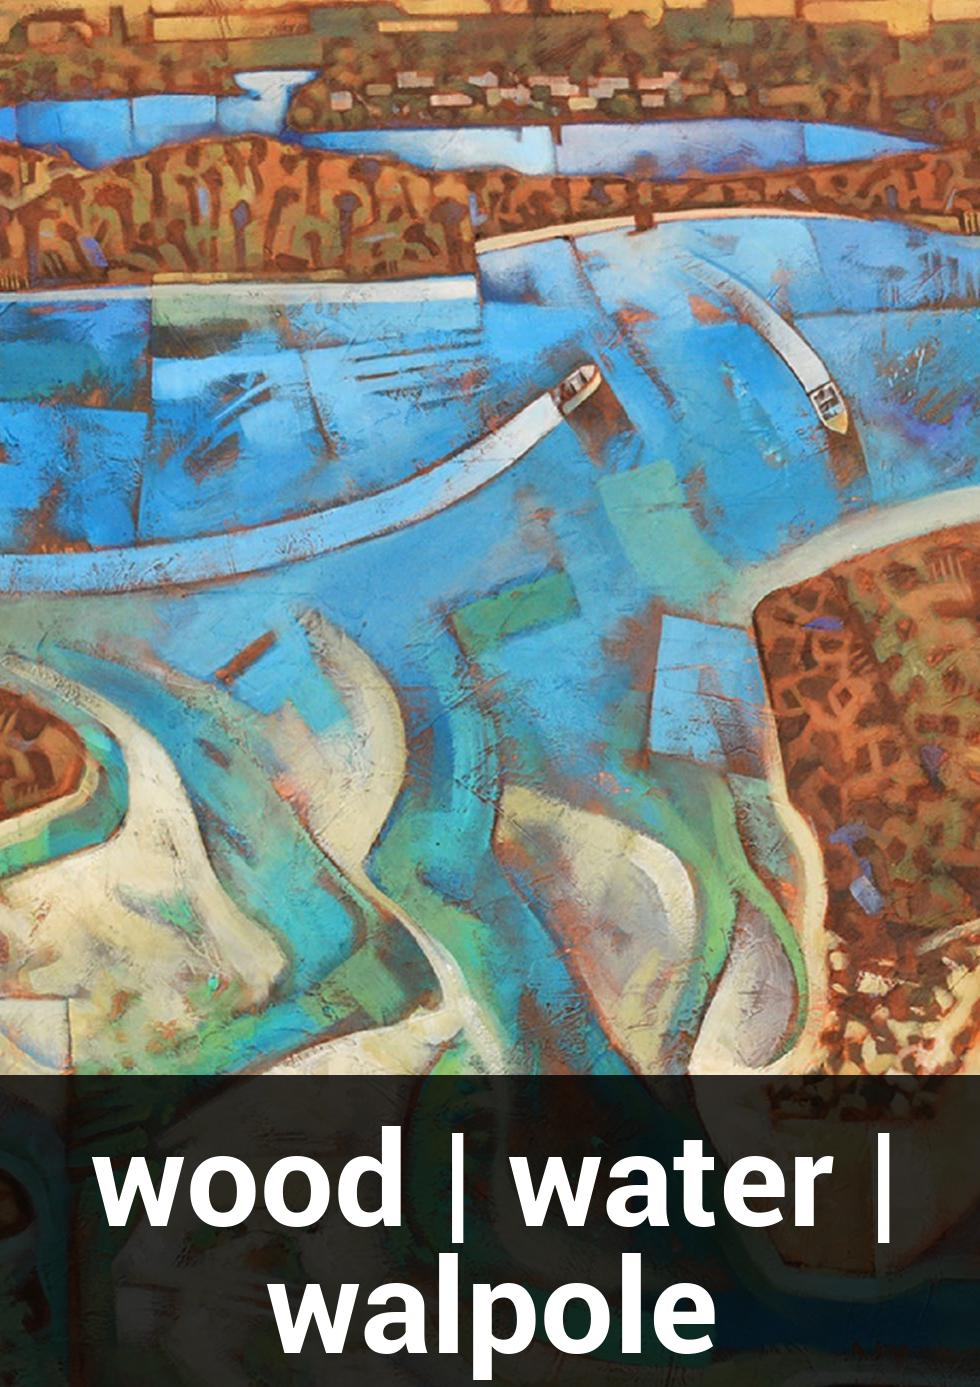 wood | water | walpole at 170 Russell St